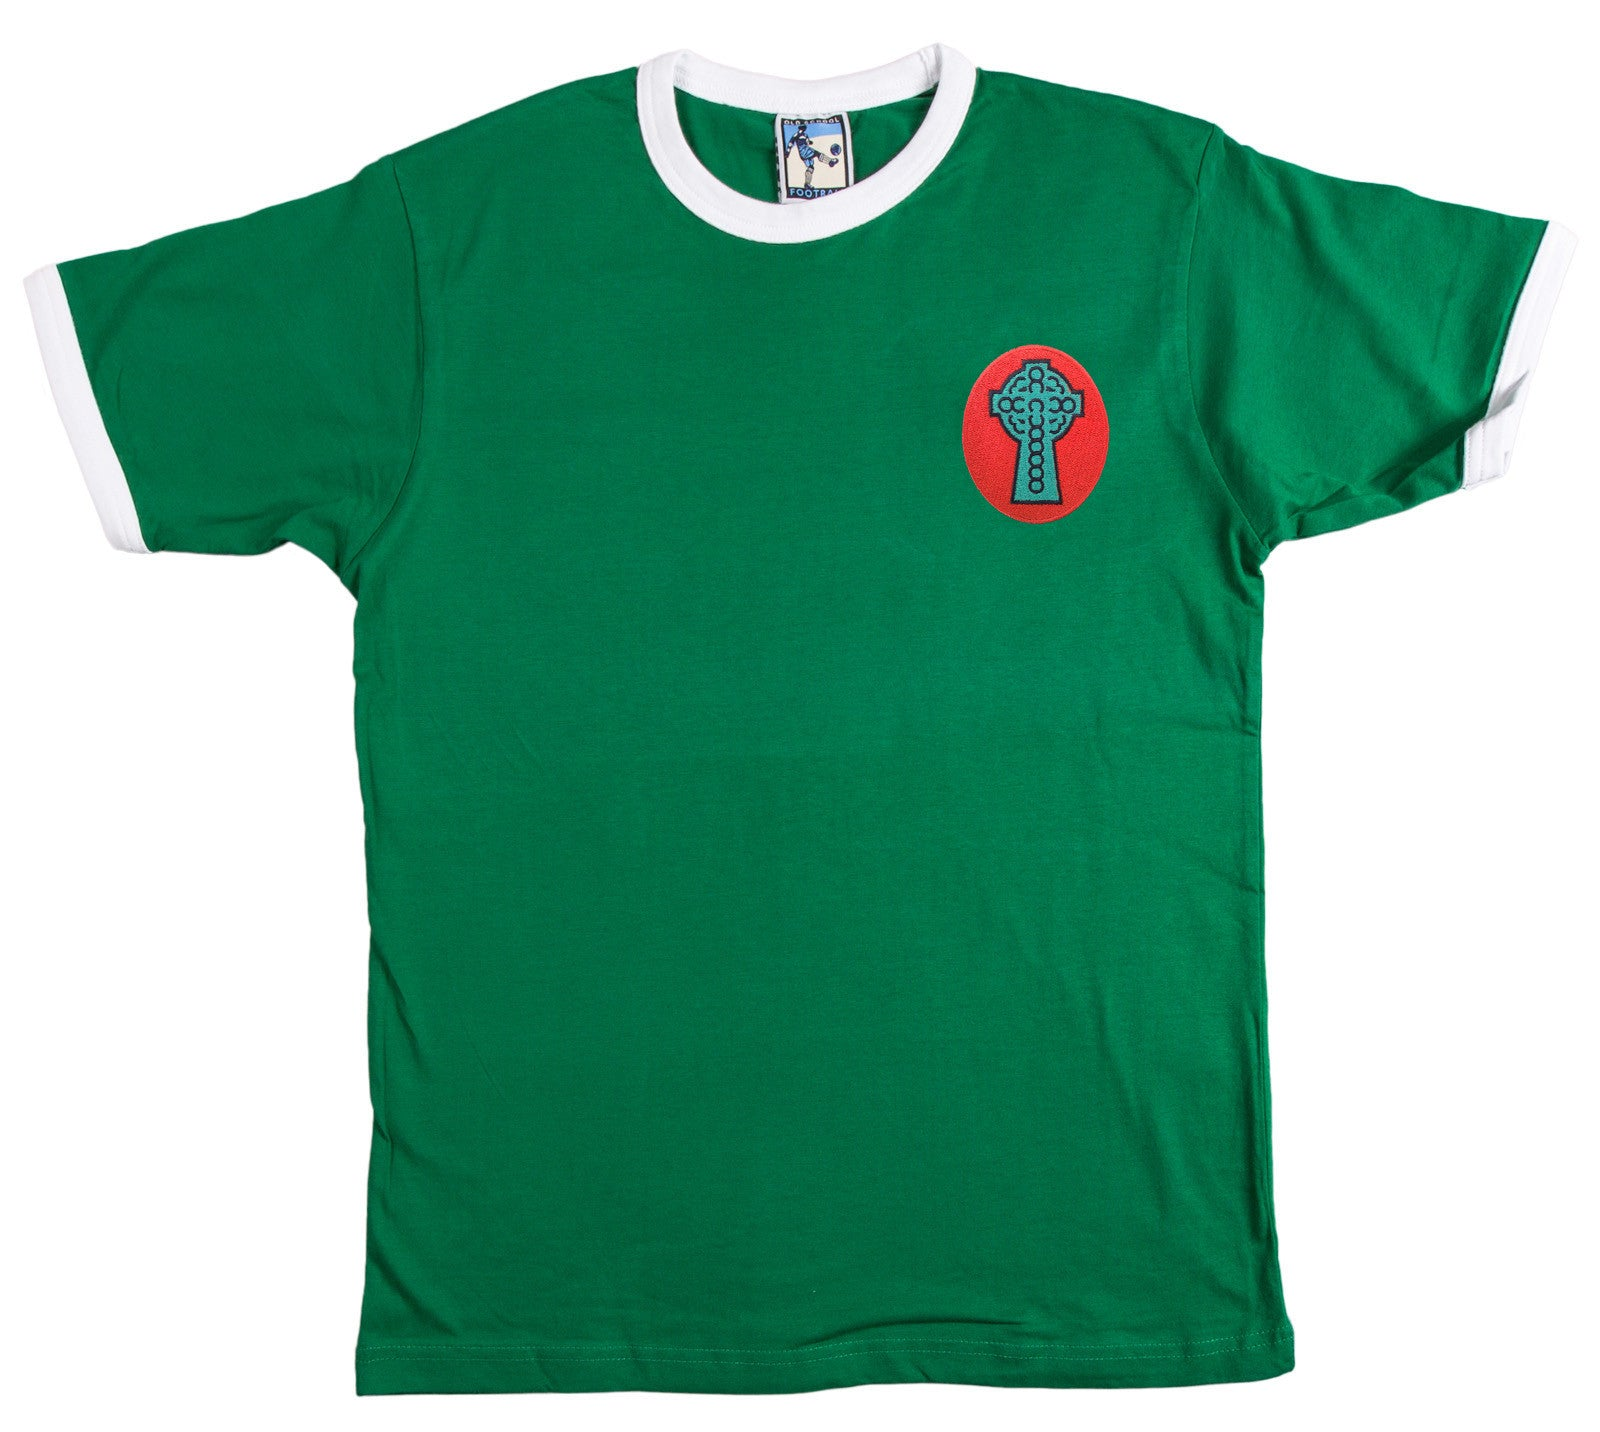 Celtic Retro Football T Shirt 1890 - Old School Football